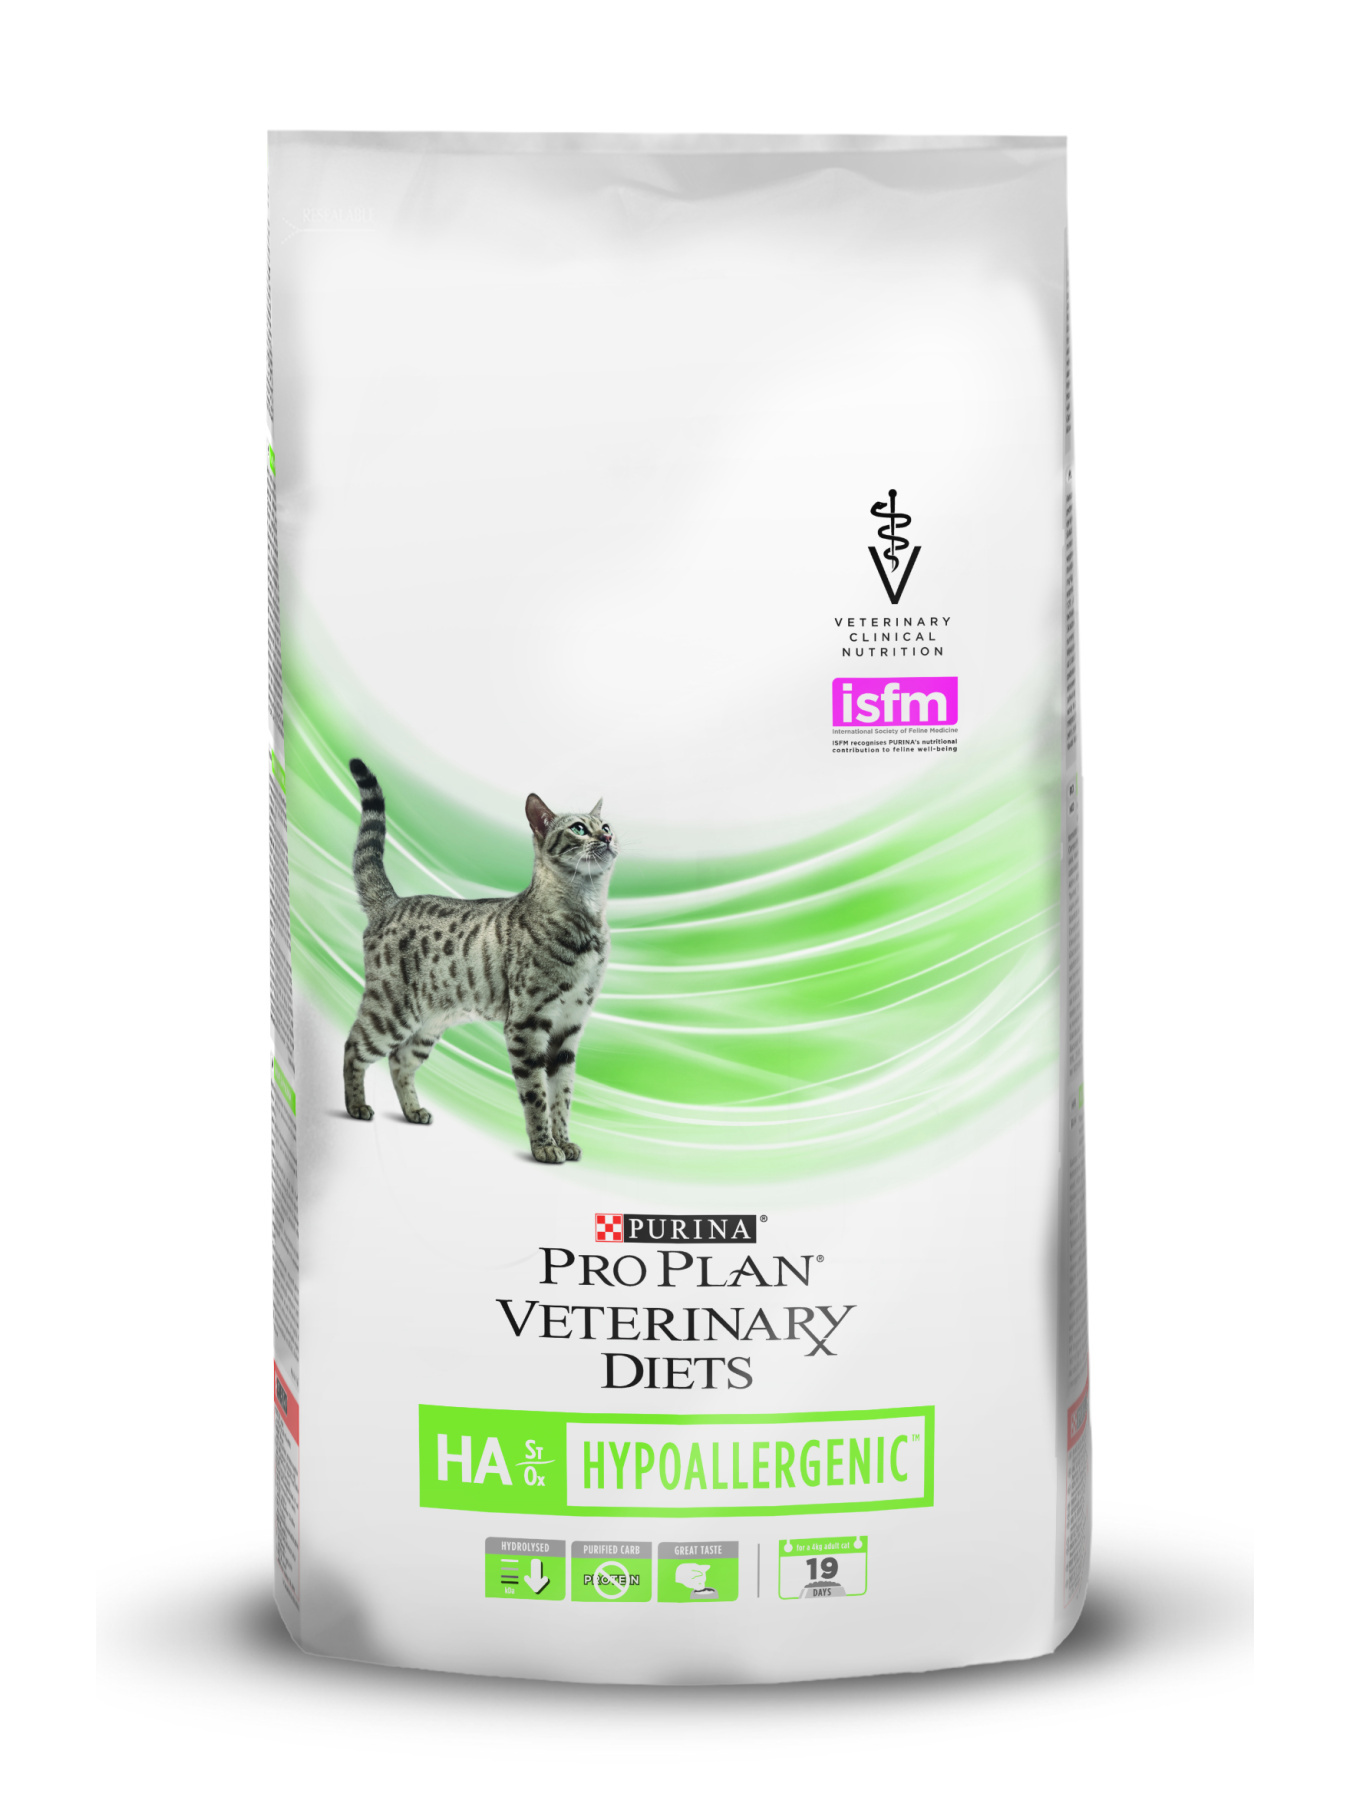 Pro Plan Veterinary Diets HA Hypoallergenic cat food in the treatment of food allergy, 1,3 kg image